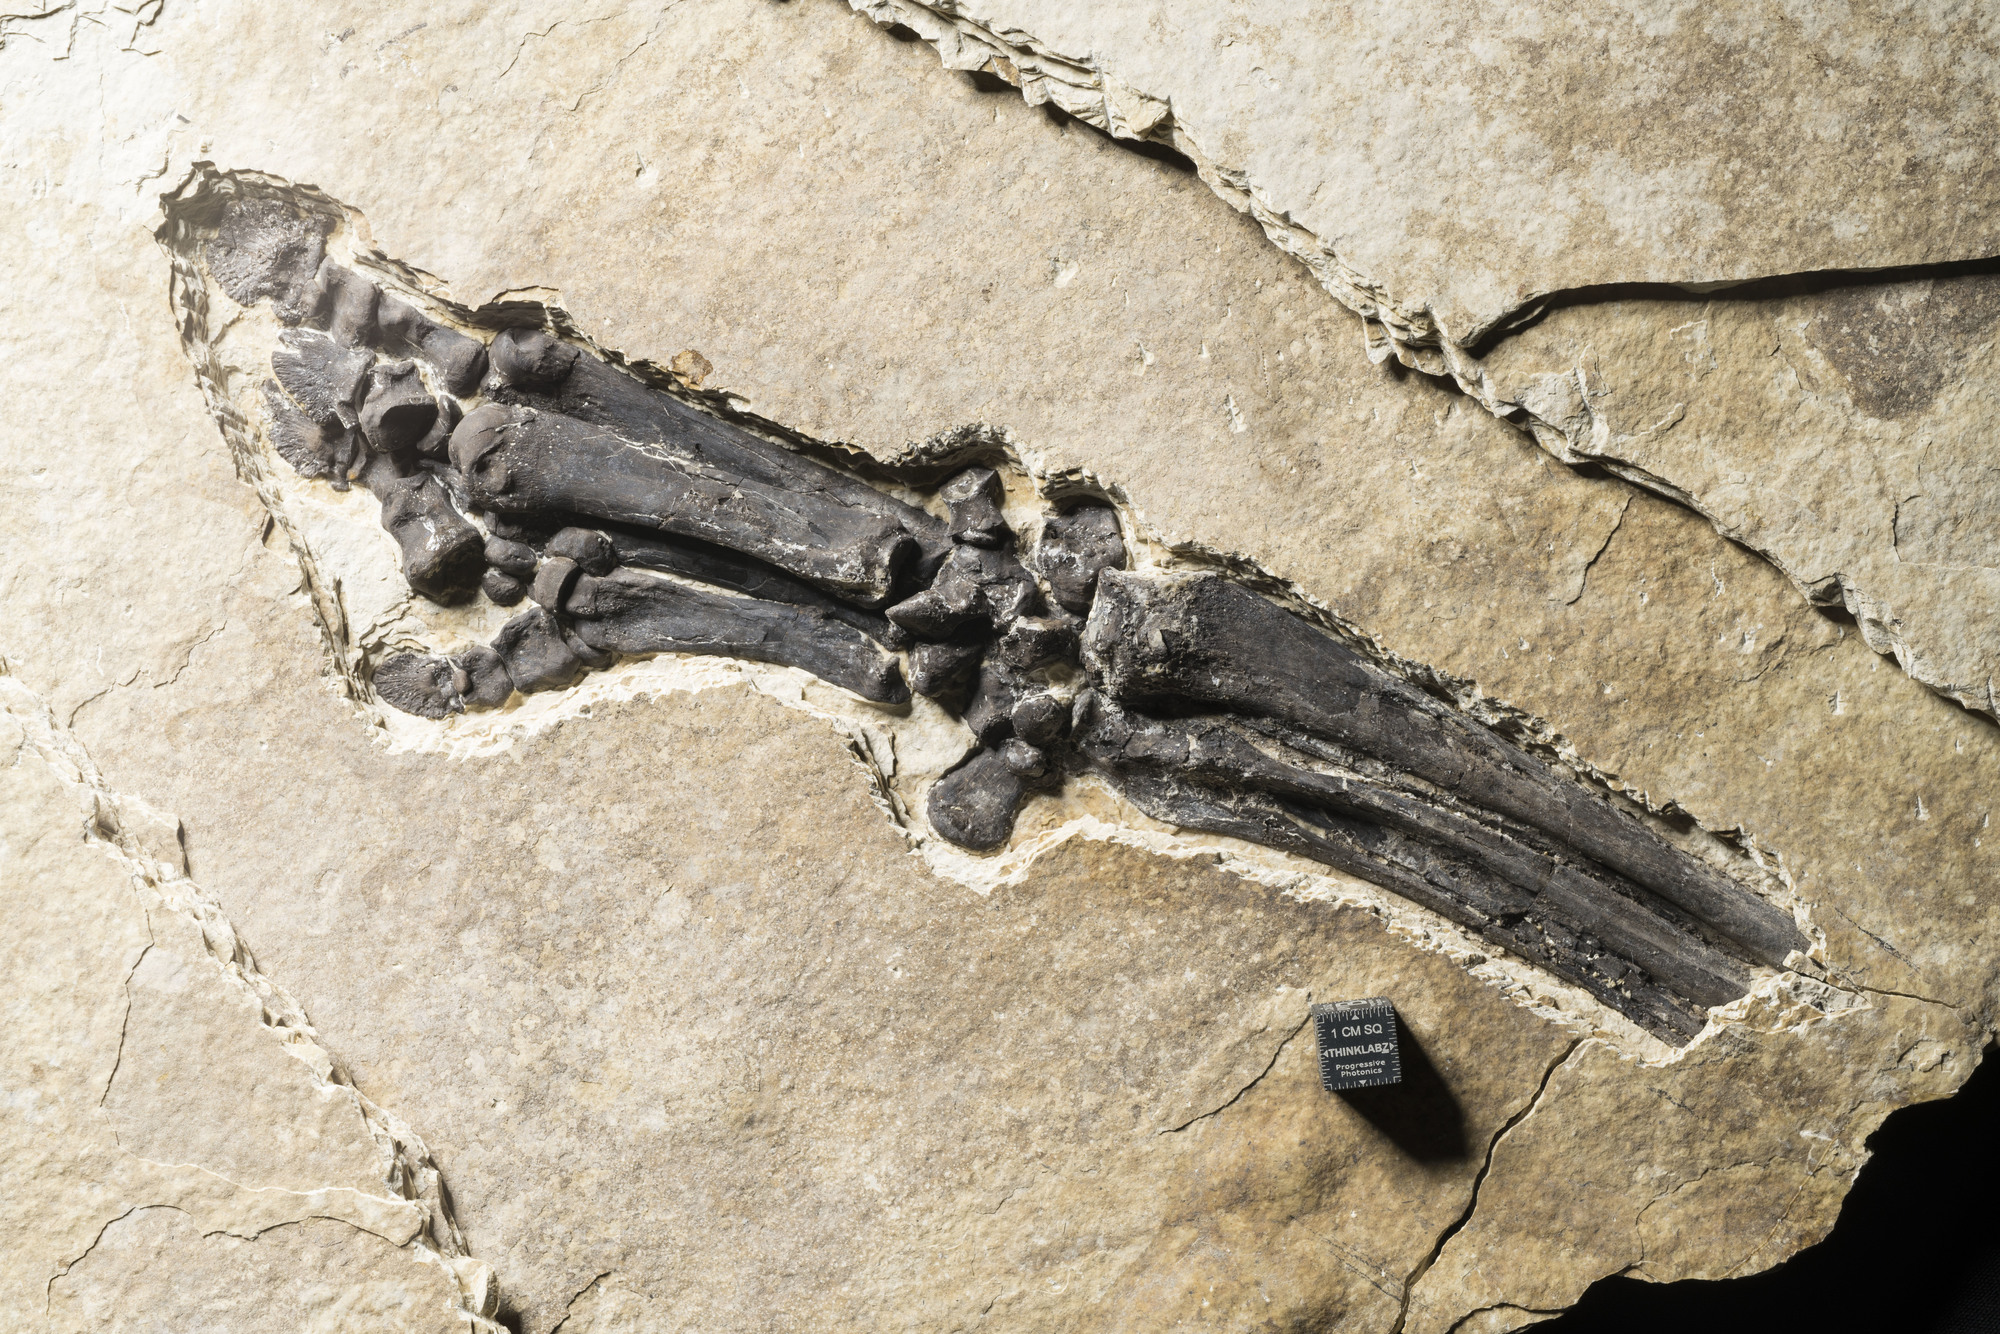 Fossil during preparation process